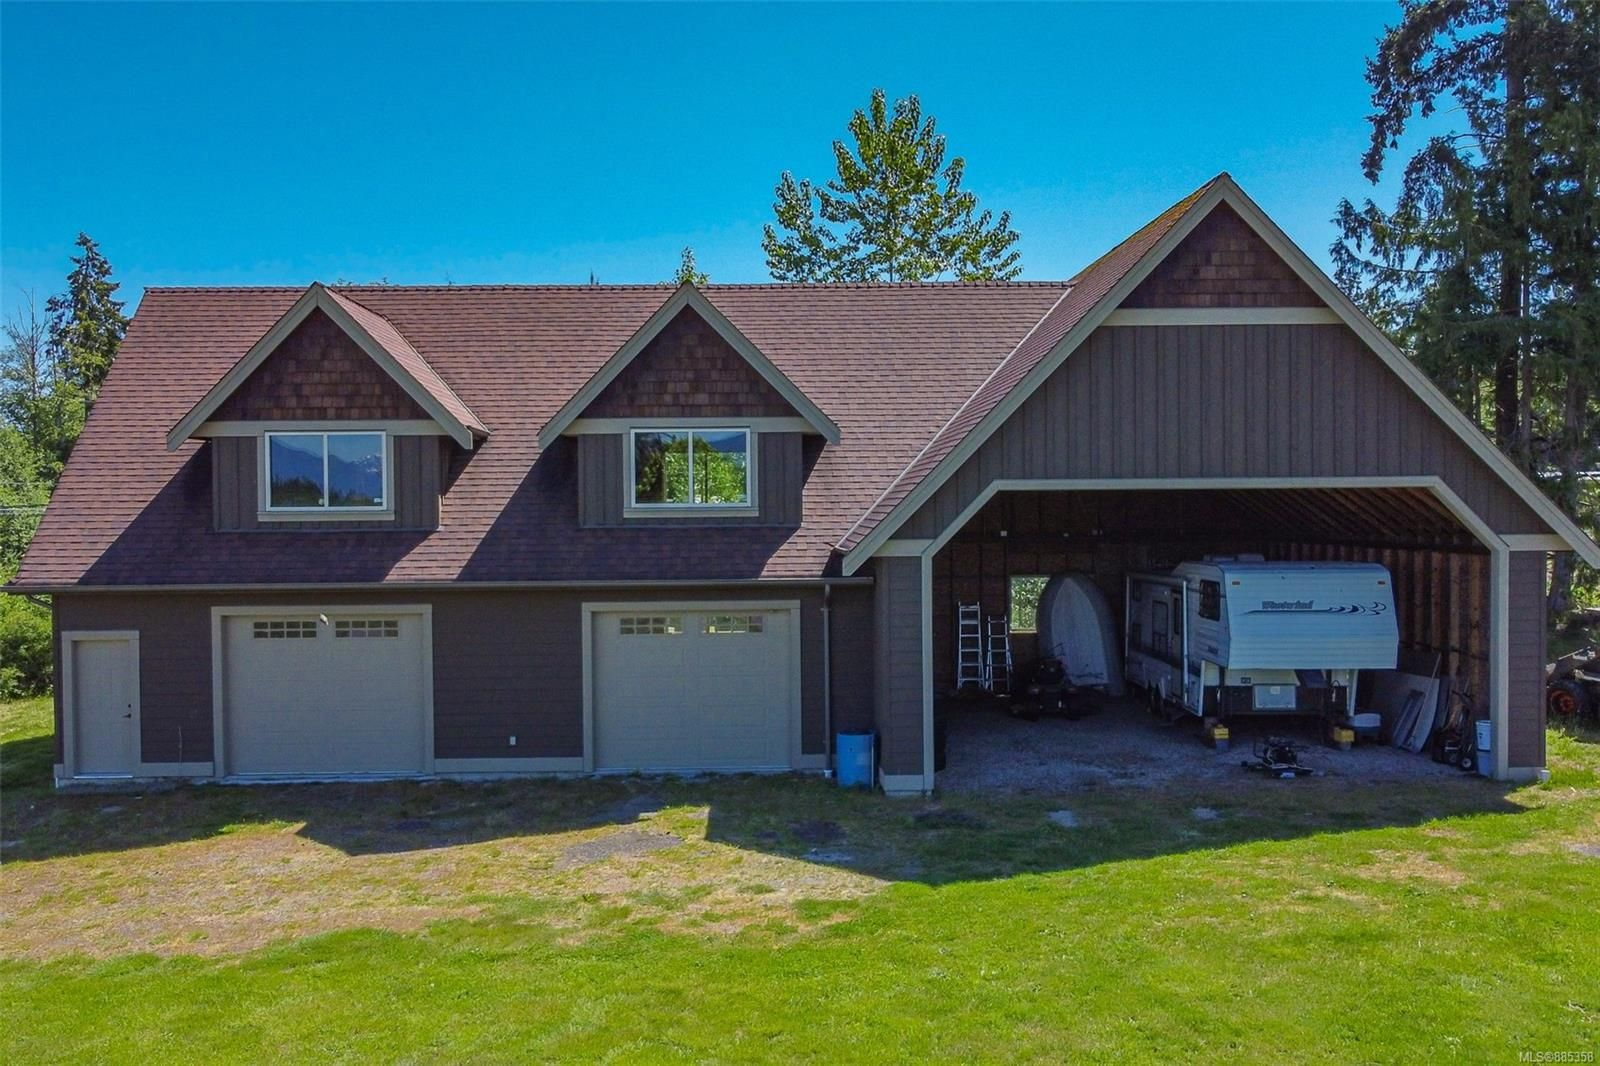 Photo 67: Photos: 2850 Peters Rd in : PQ Qualicum Beach House for sale (Parksville/Qualicum)  : MLS®# 885358